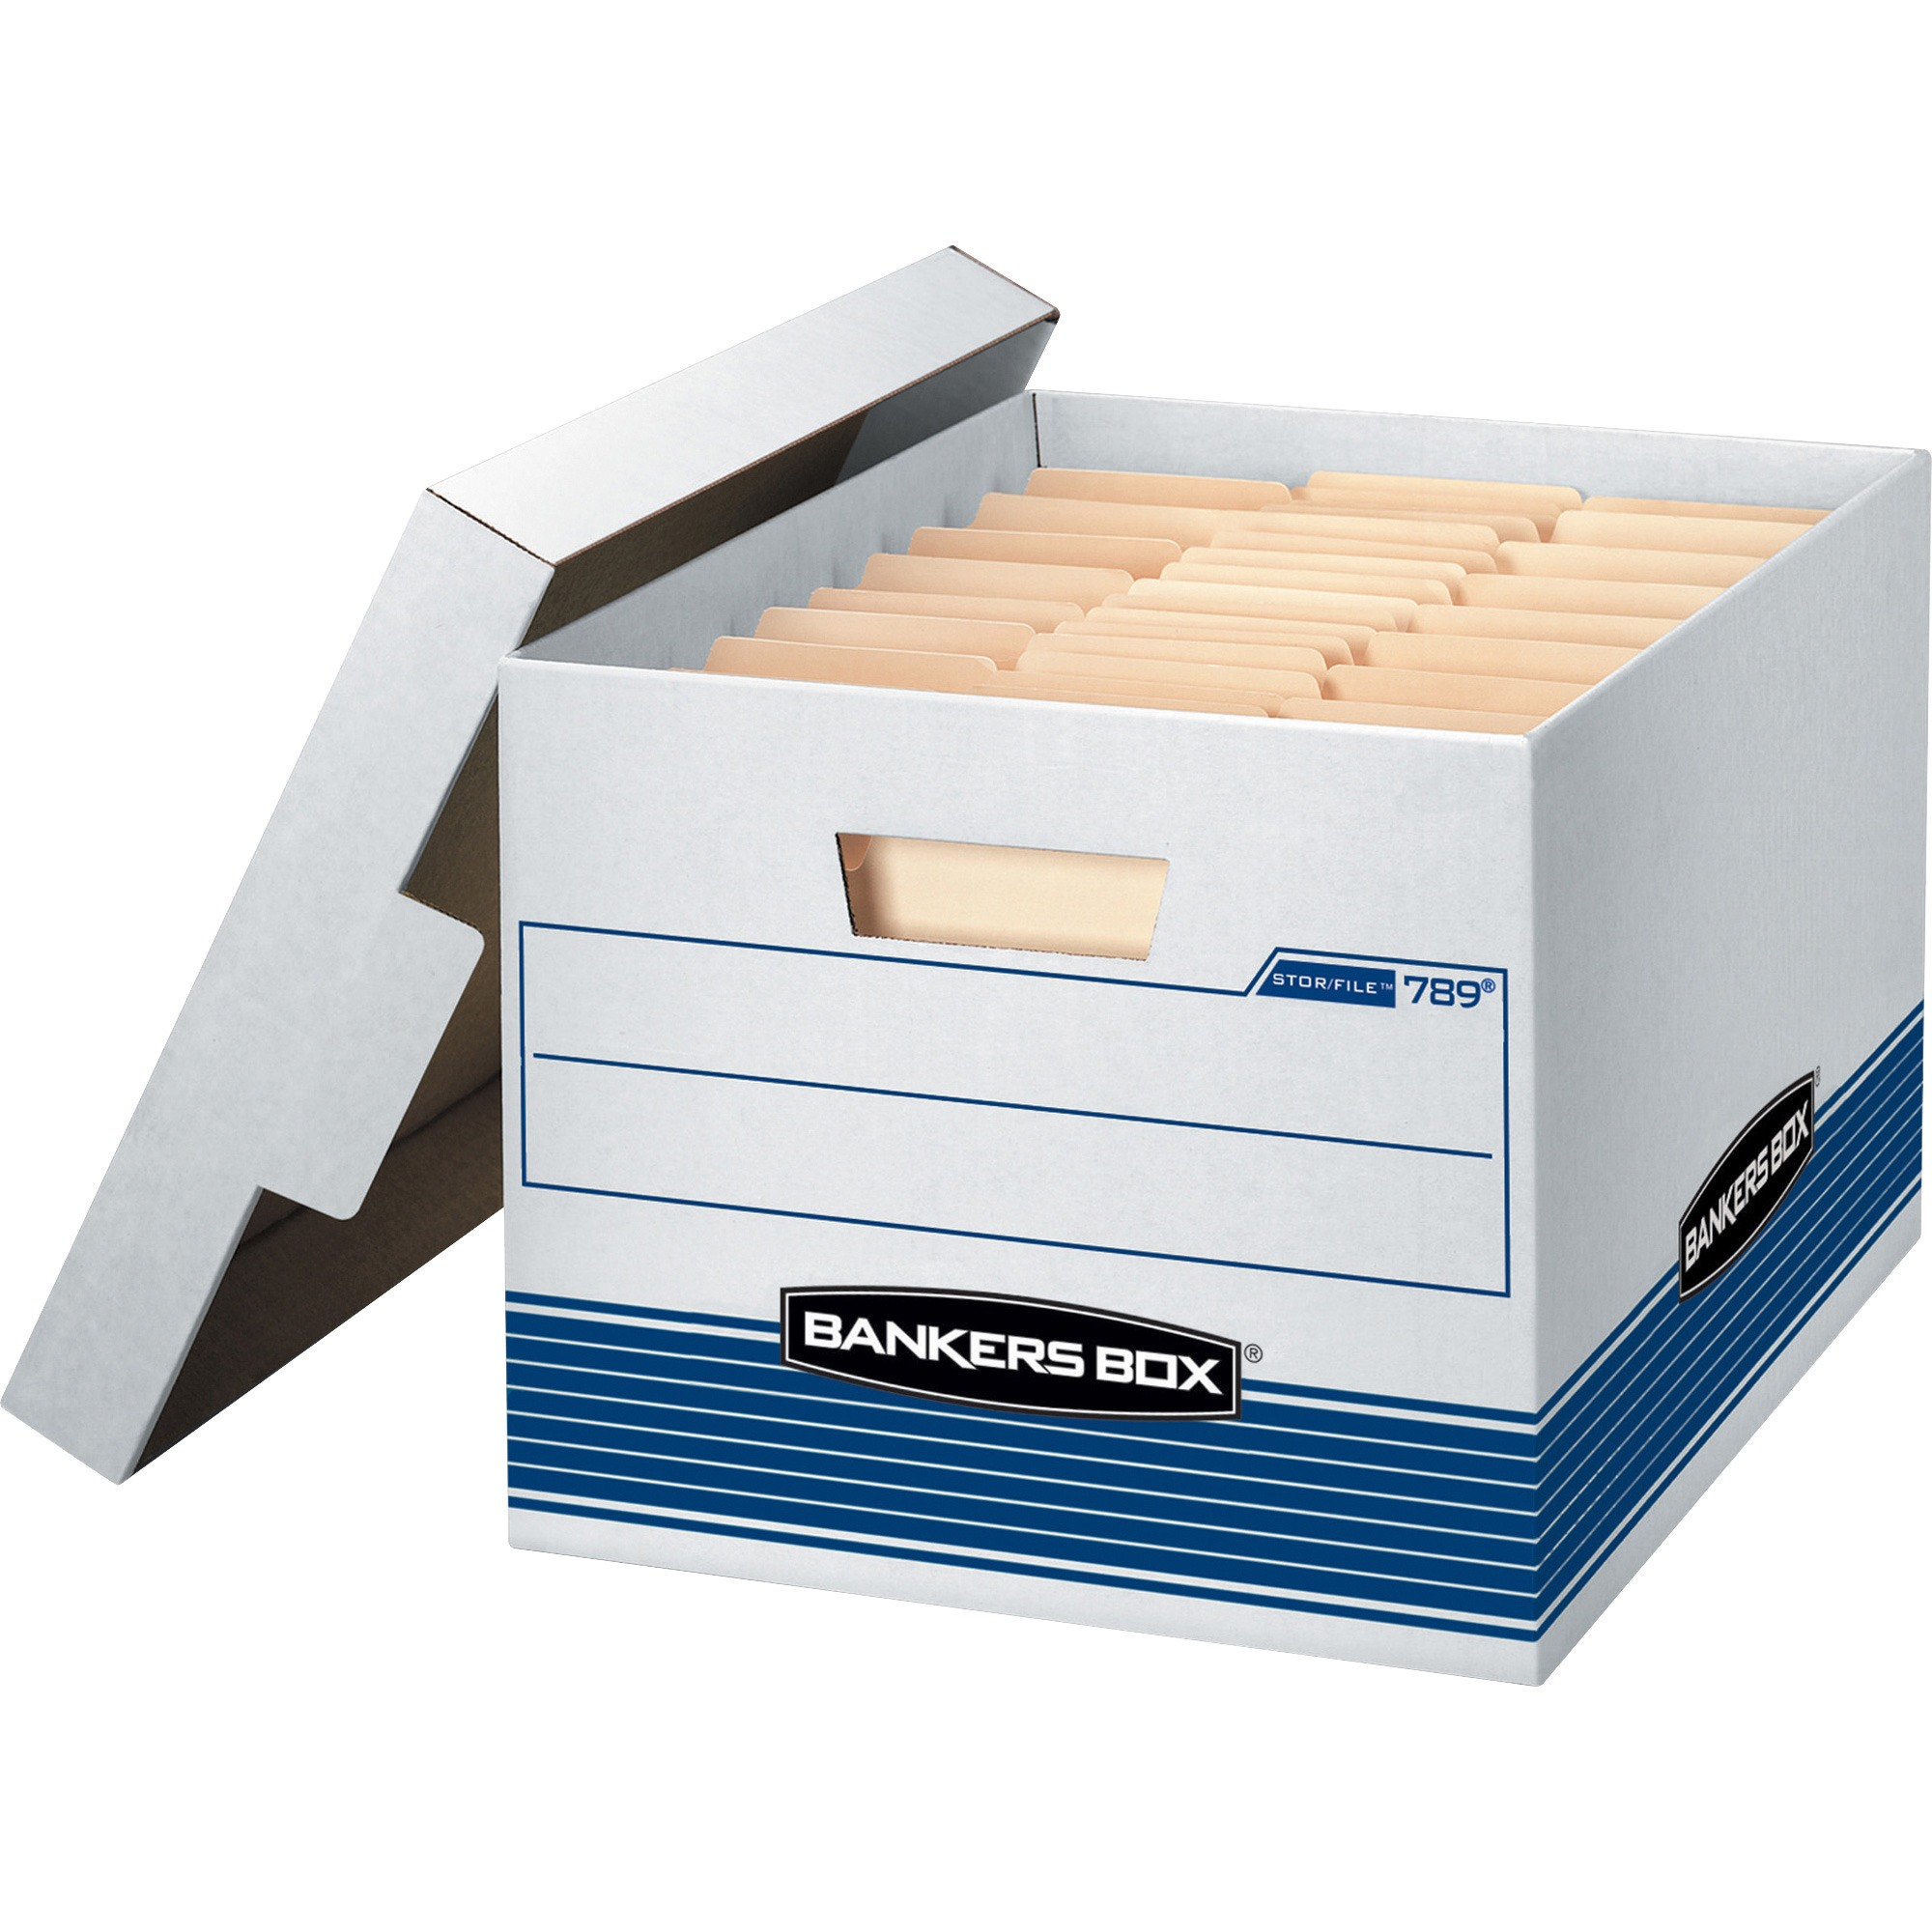 Bankers Box, FEL00789, Quick/Stor Storage Boxes, 12 / Carton, White,Blue